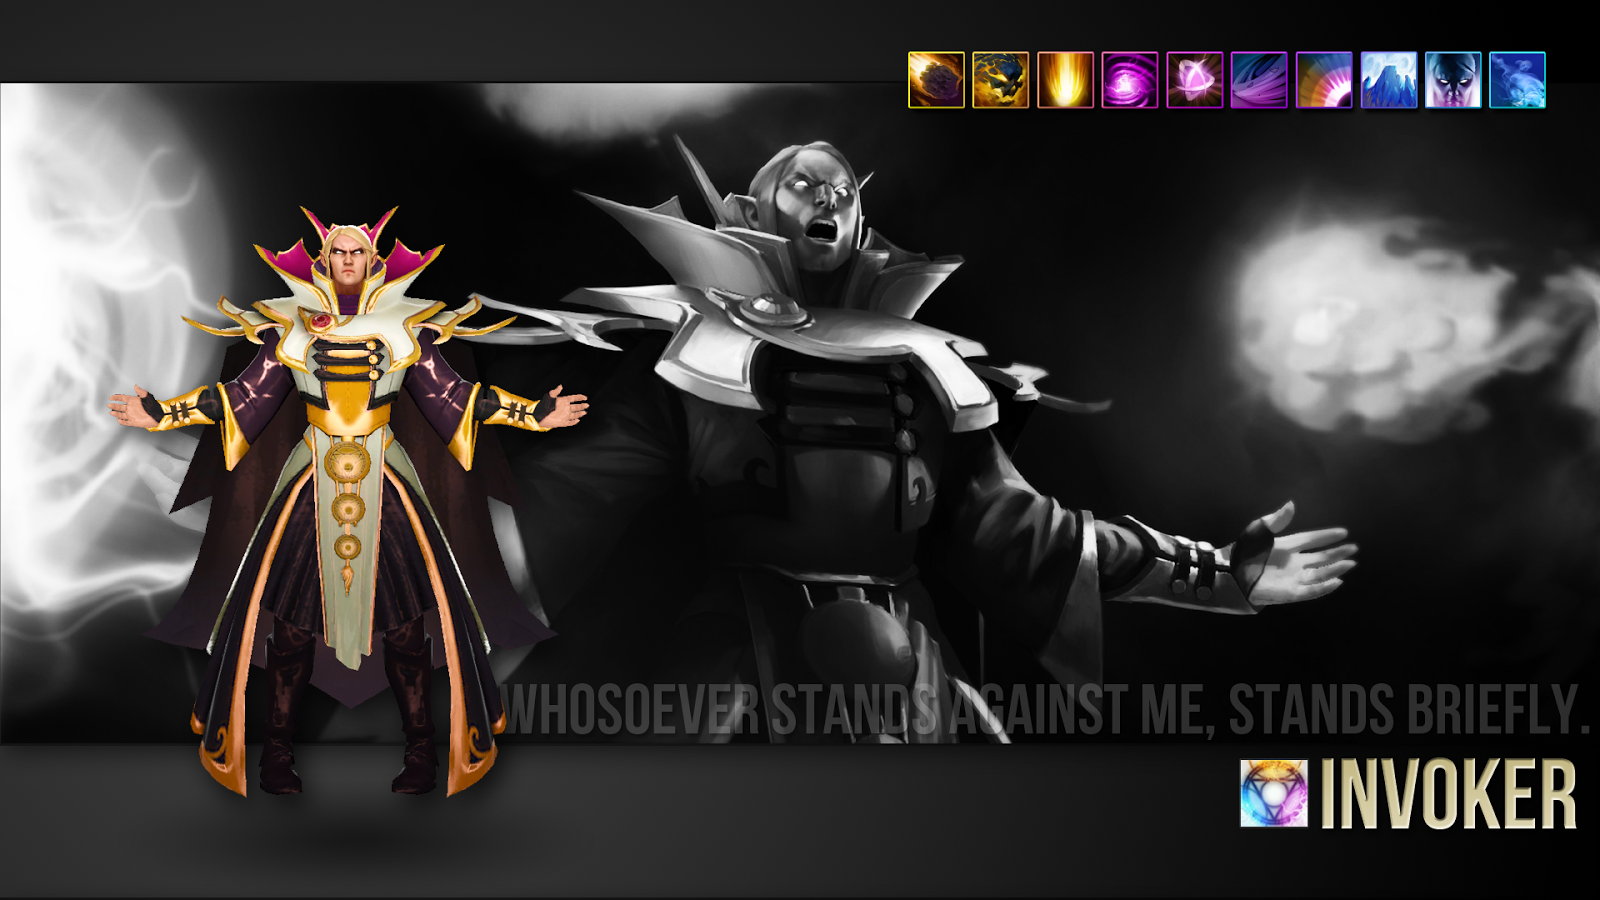 Dota 2 Wallpapers: Dota2 Wallpaper Invoker 1920x1080 (by_imkb)